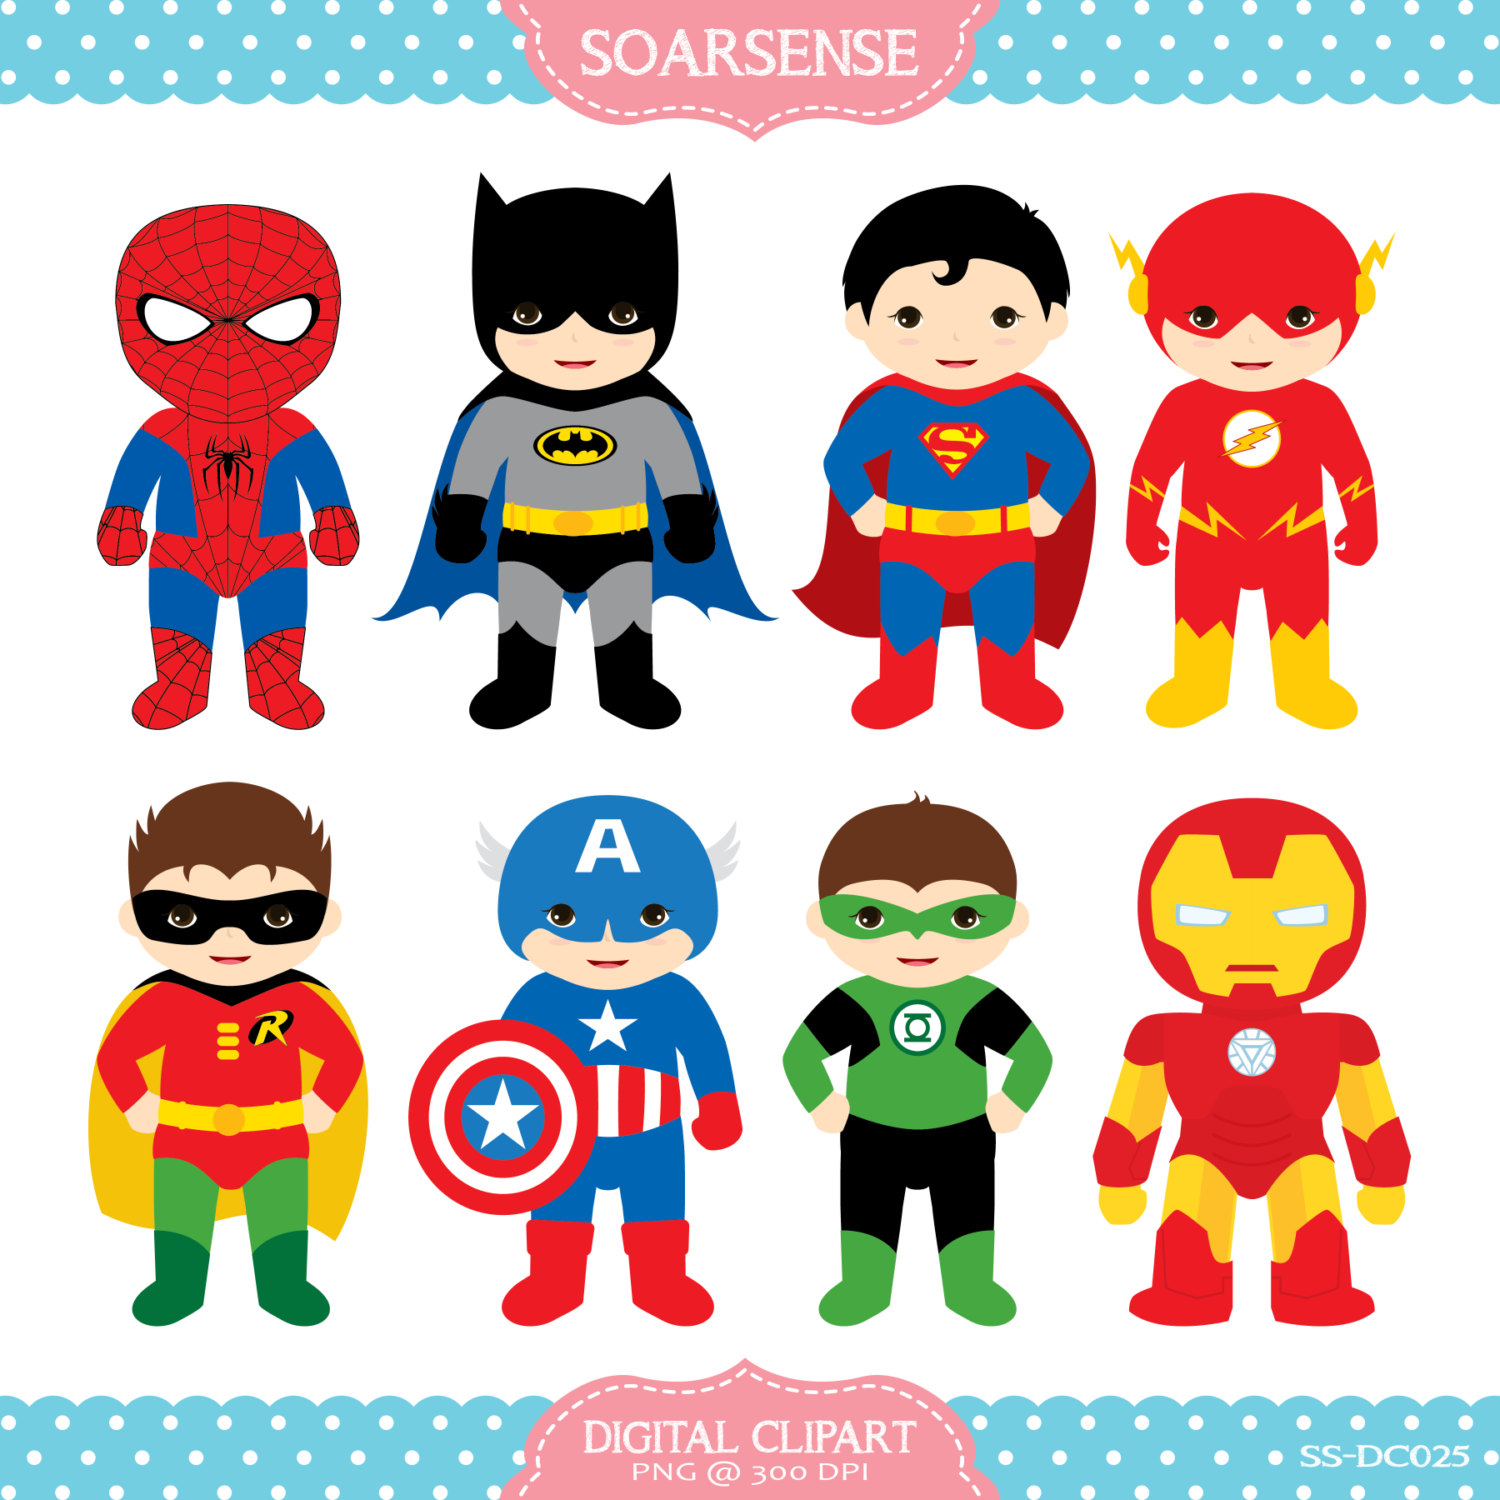 Superheroes Clipart 2 February .-Superheroes Clipart 2 February .-19